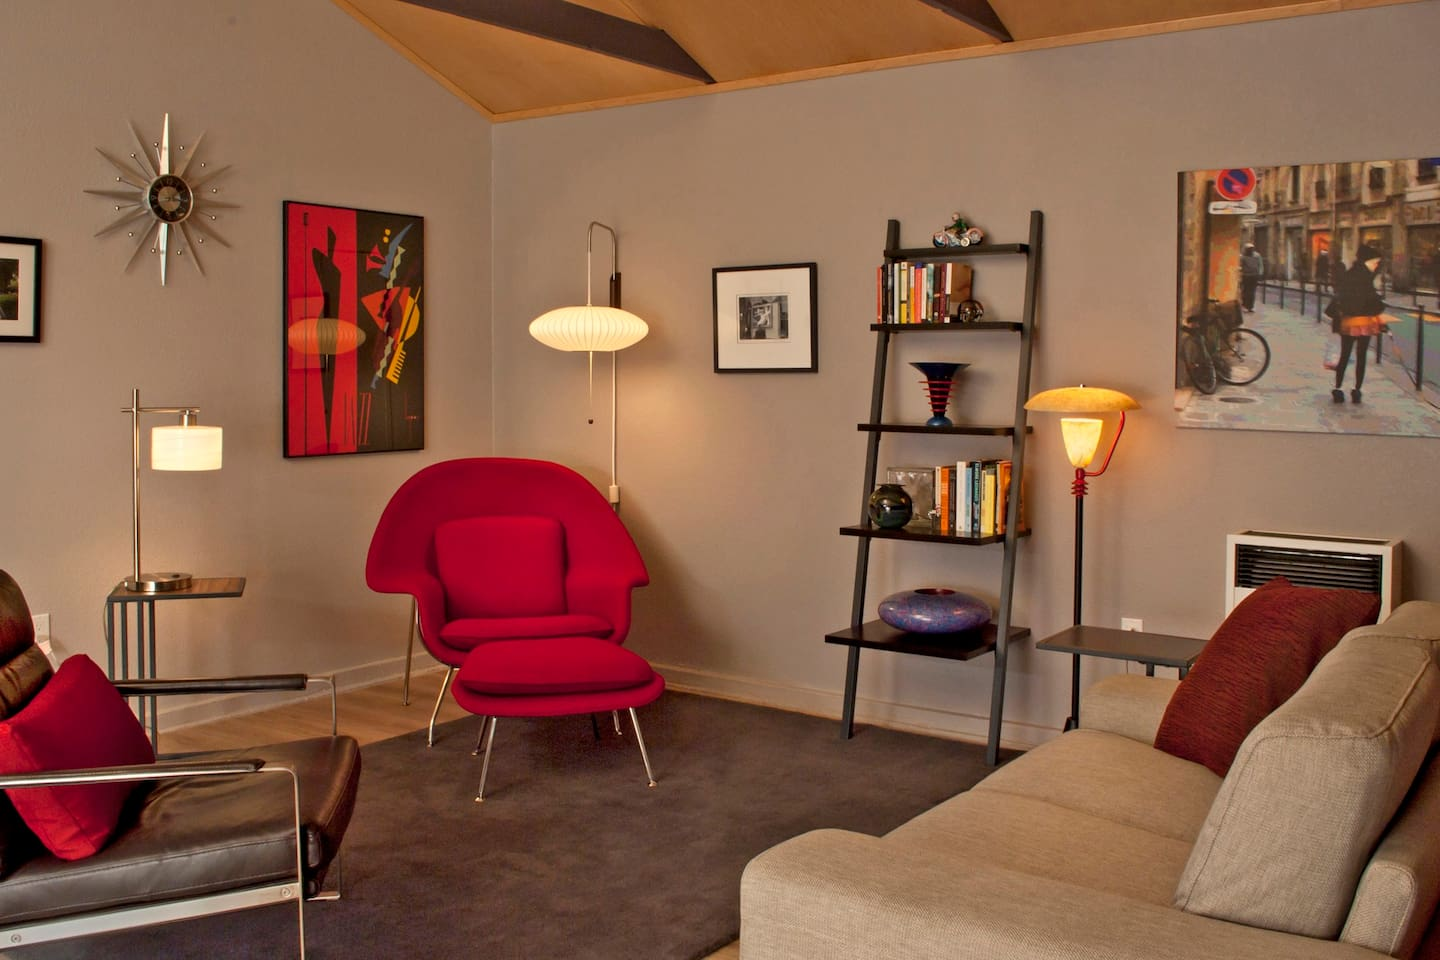 Modern living area to relax, enjoy a good book or just unwind